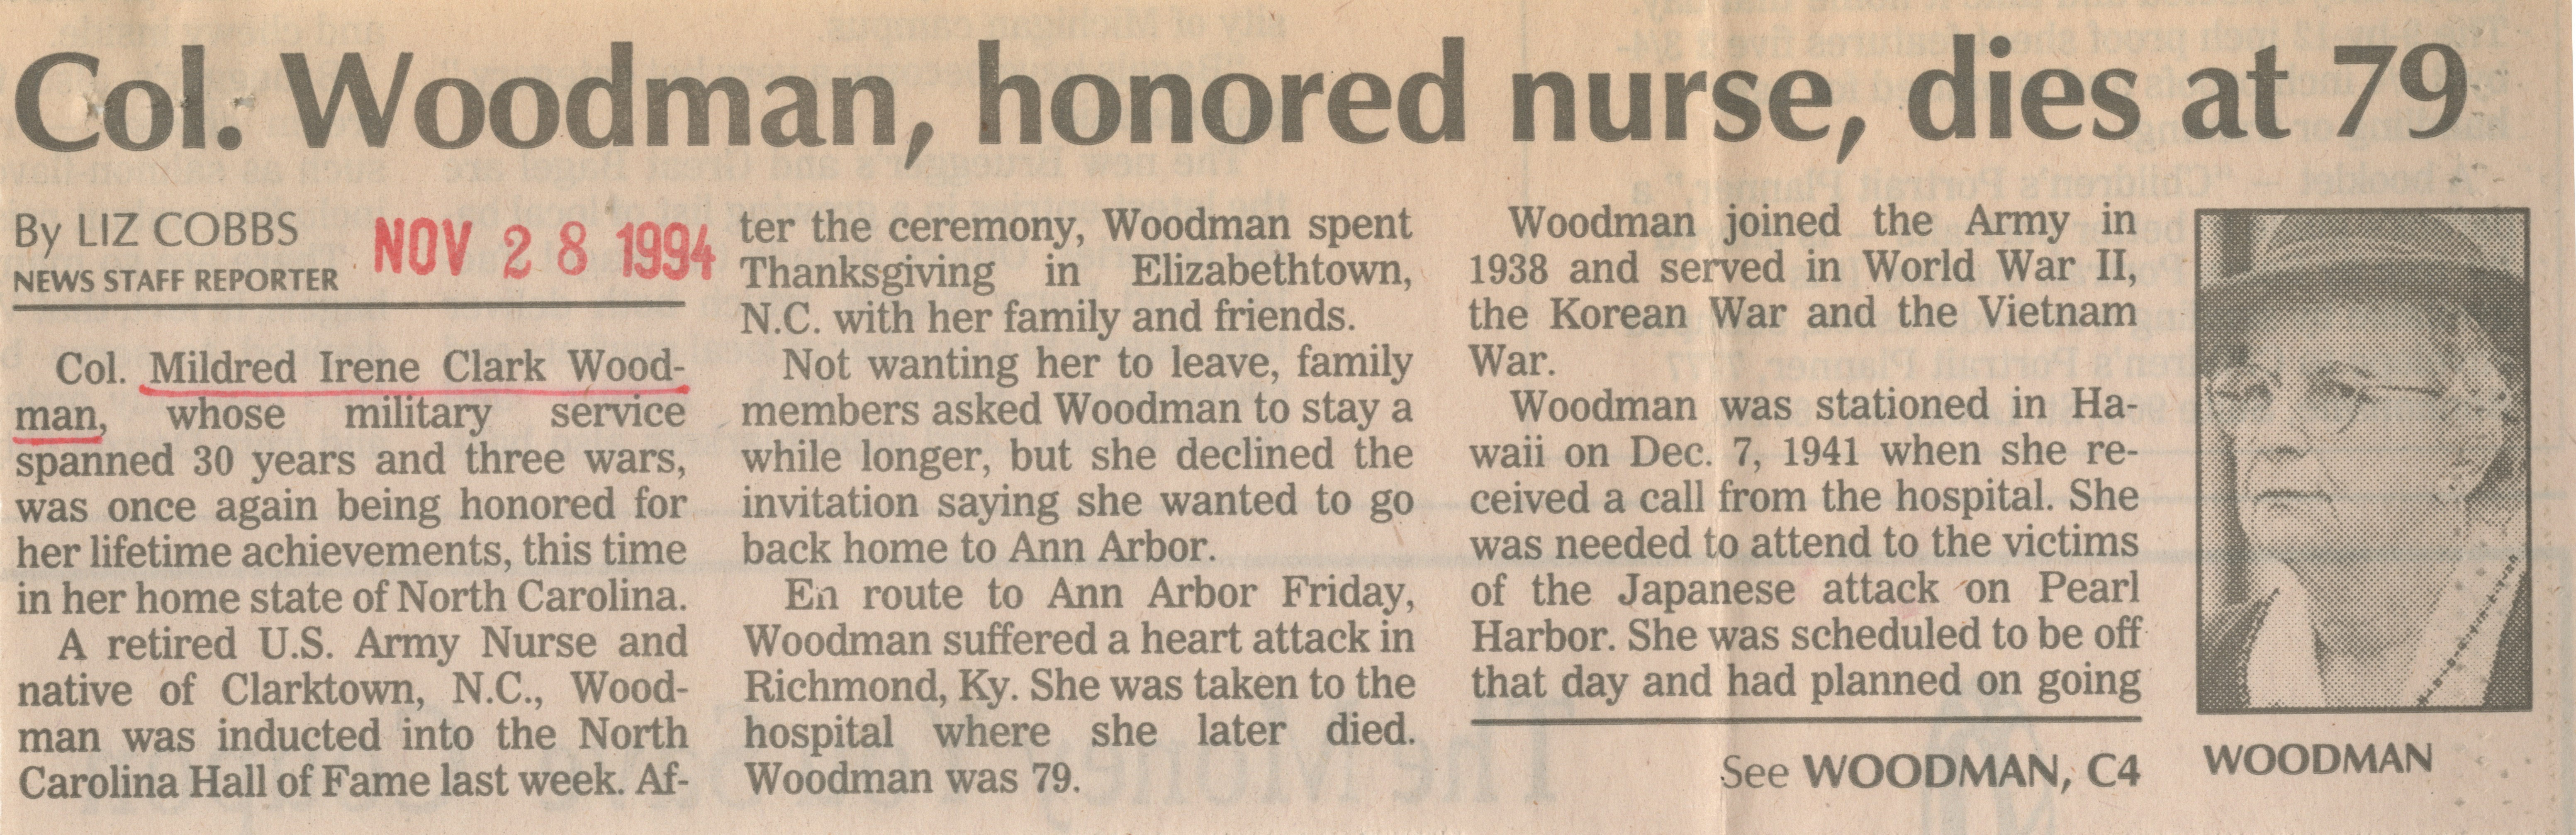 Col. Woodman, honored nurse, dies at 79 image